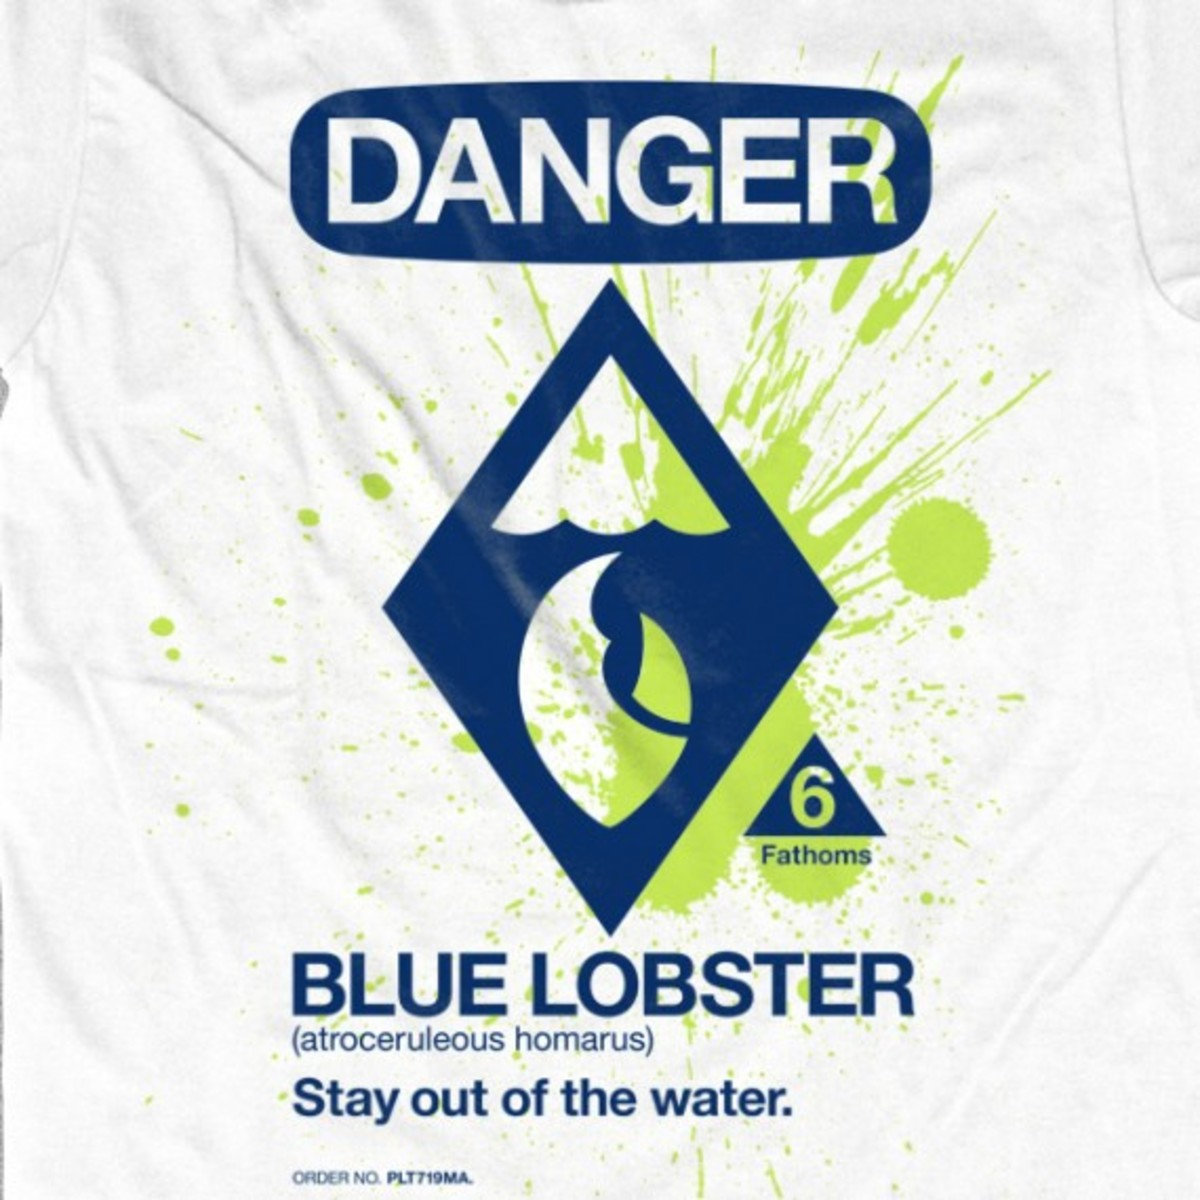 CONCEPTS Boston - Danger Blue Lobster Limited T-Shirt - Front 01